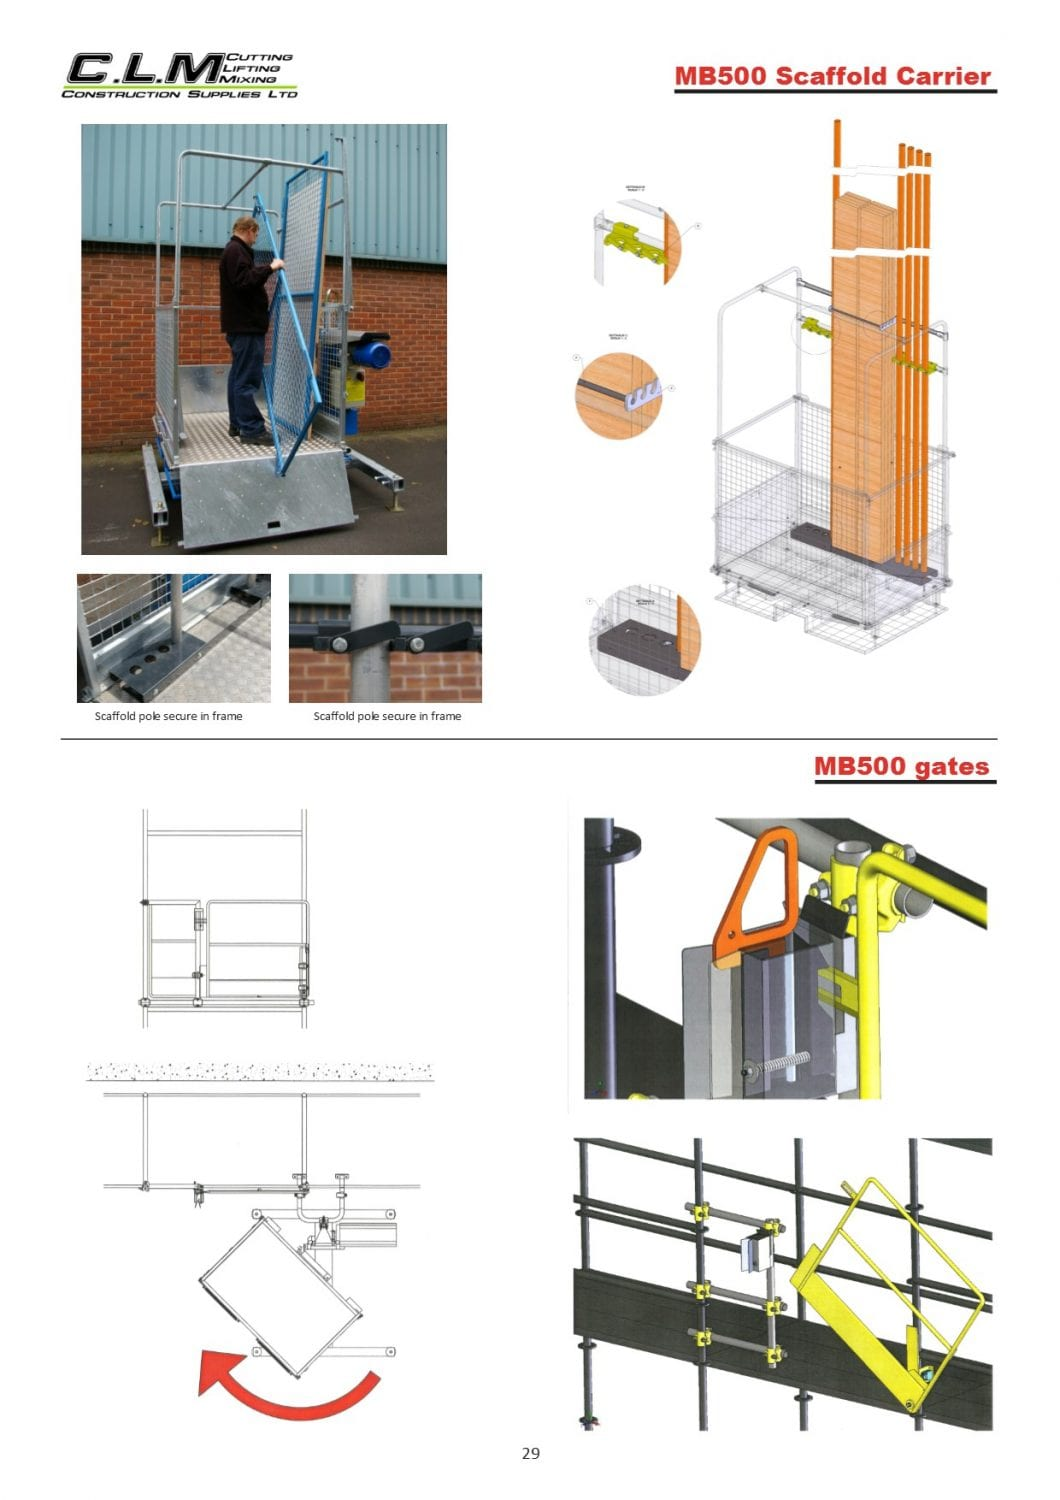 page 29 MB500 Scaffold Carrier - MB500 Gates